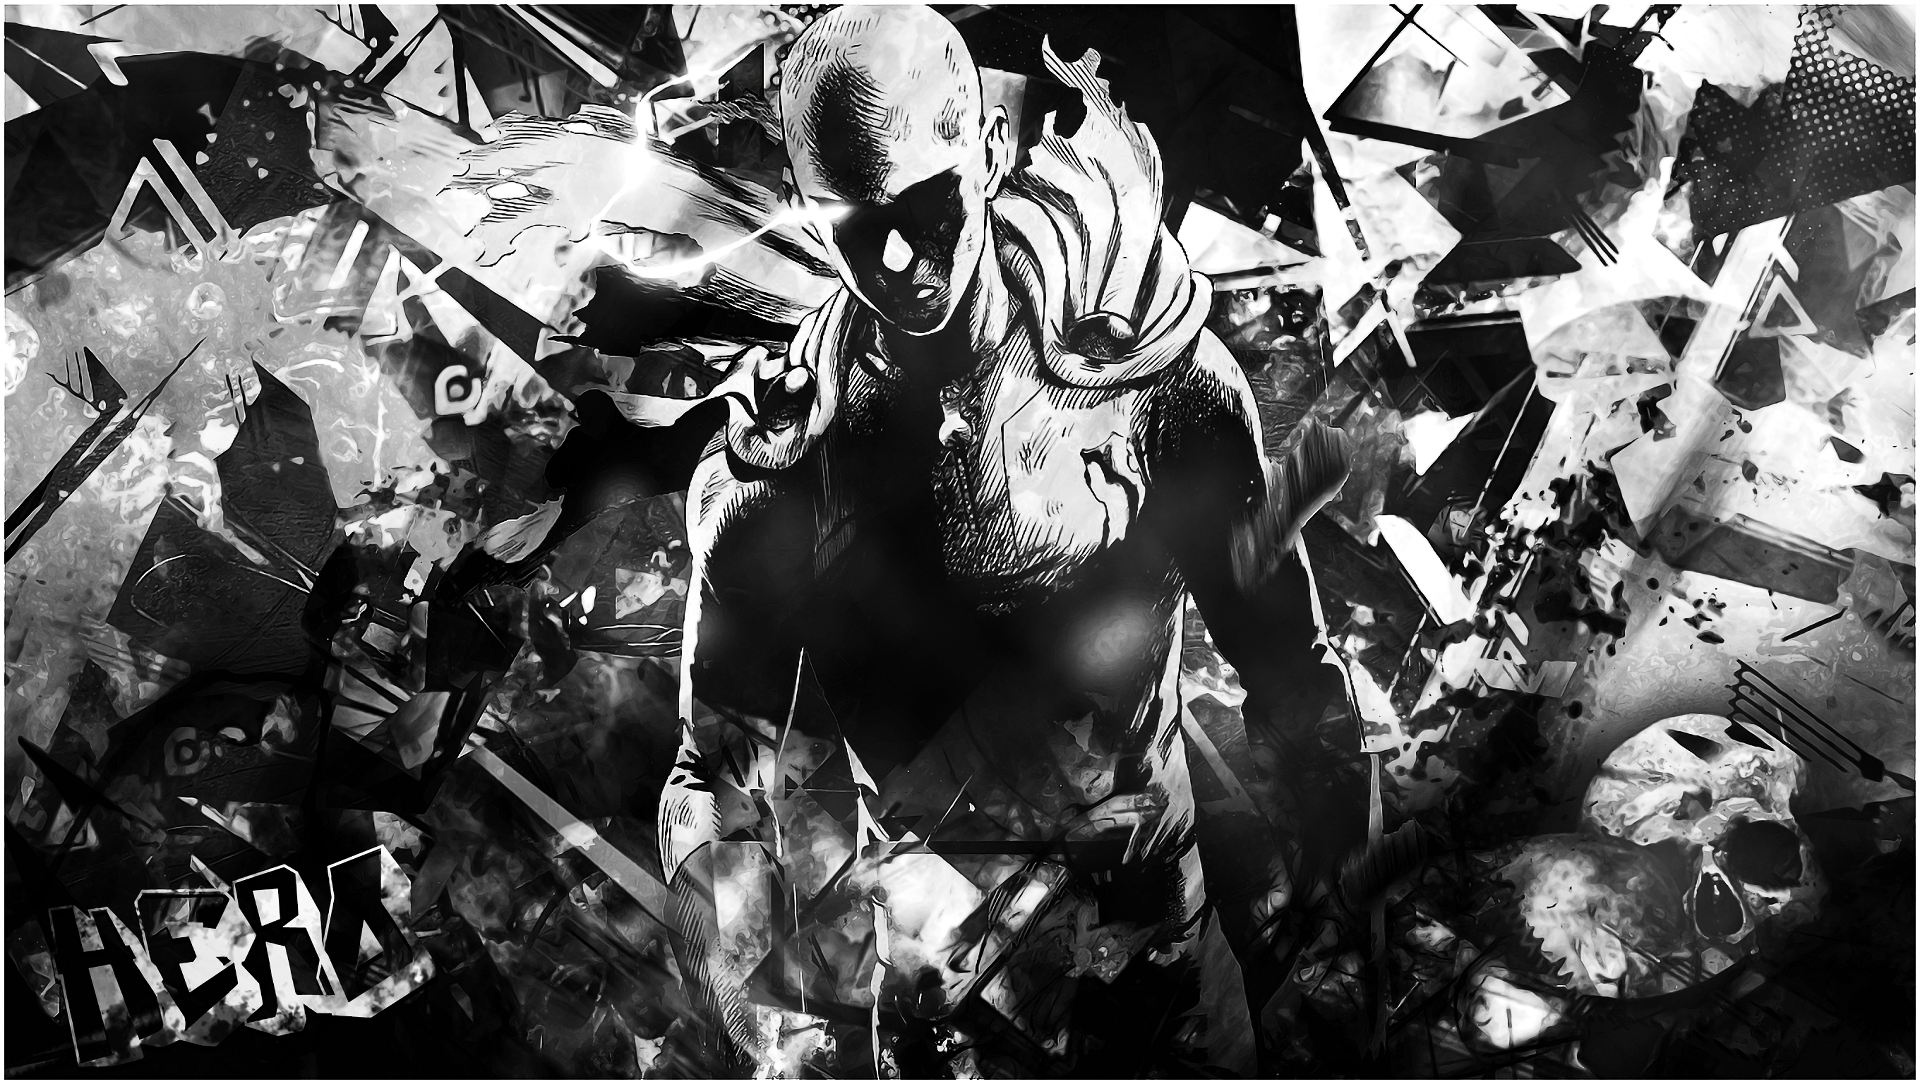 One punch man hd wallpaper background image 1920x1084 - Funny one punch man wallpaper ...